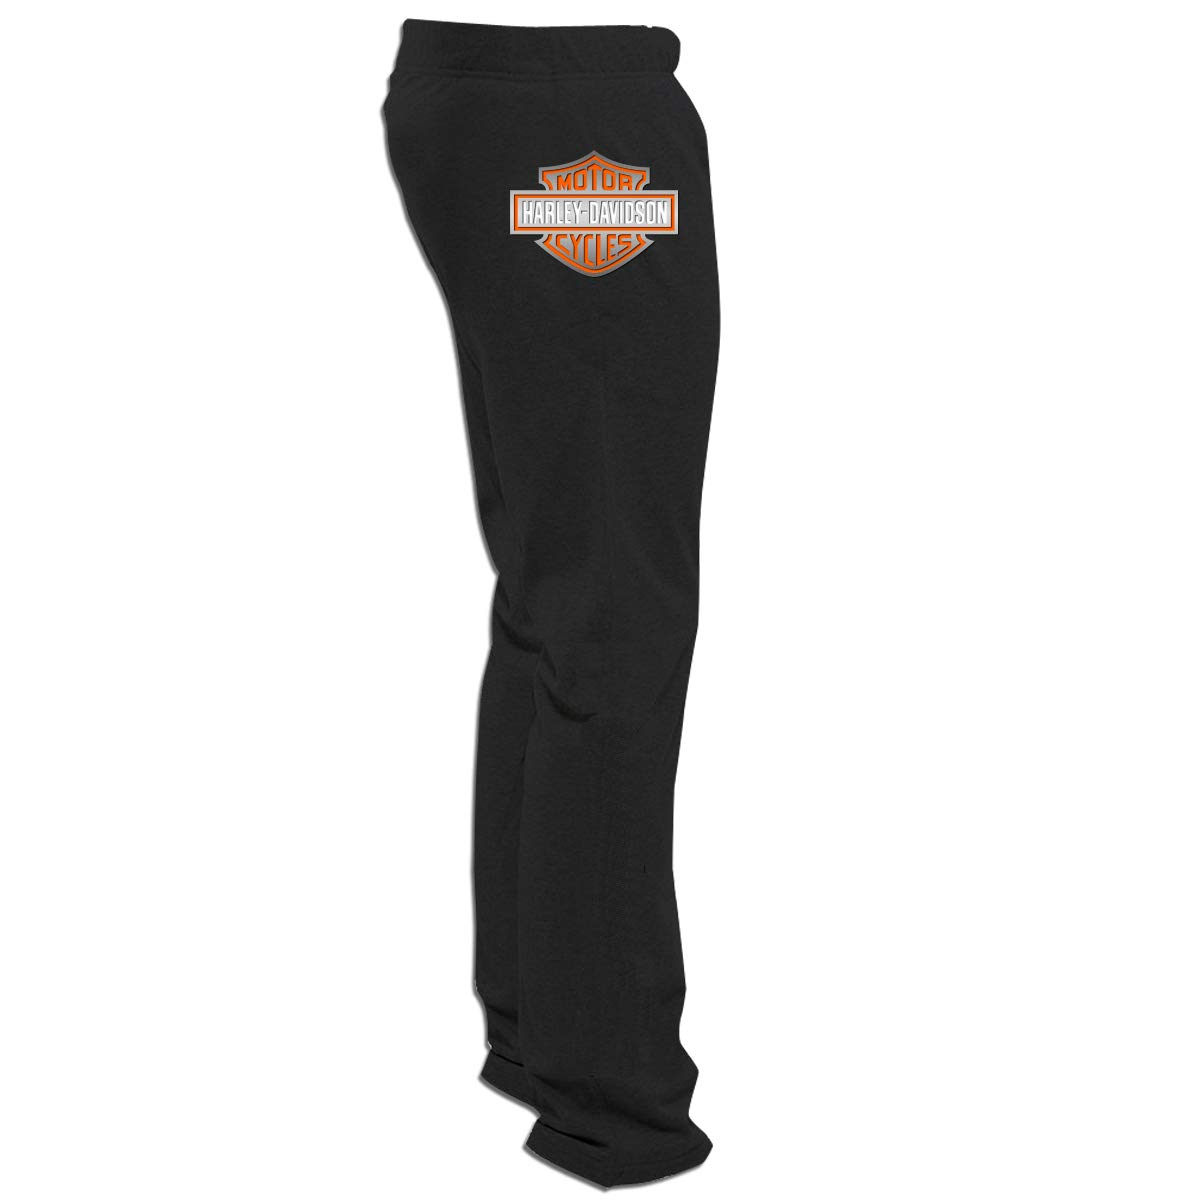 Men's Harley Davidson Gym Workout Track Pants With Pockets Meamyezz